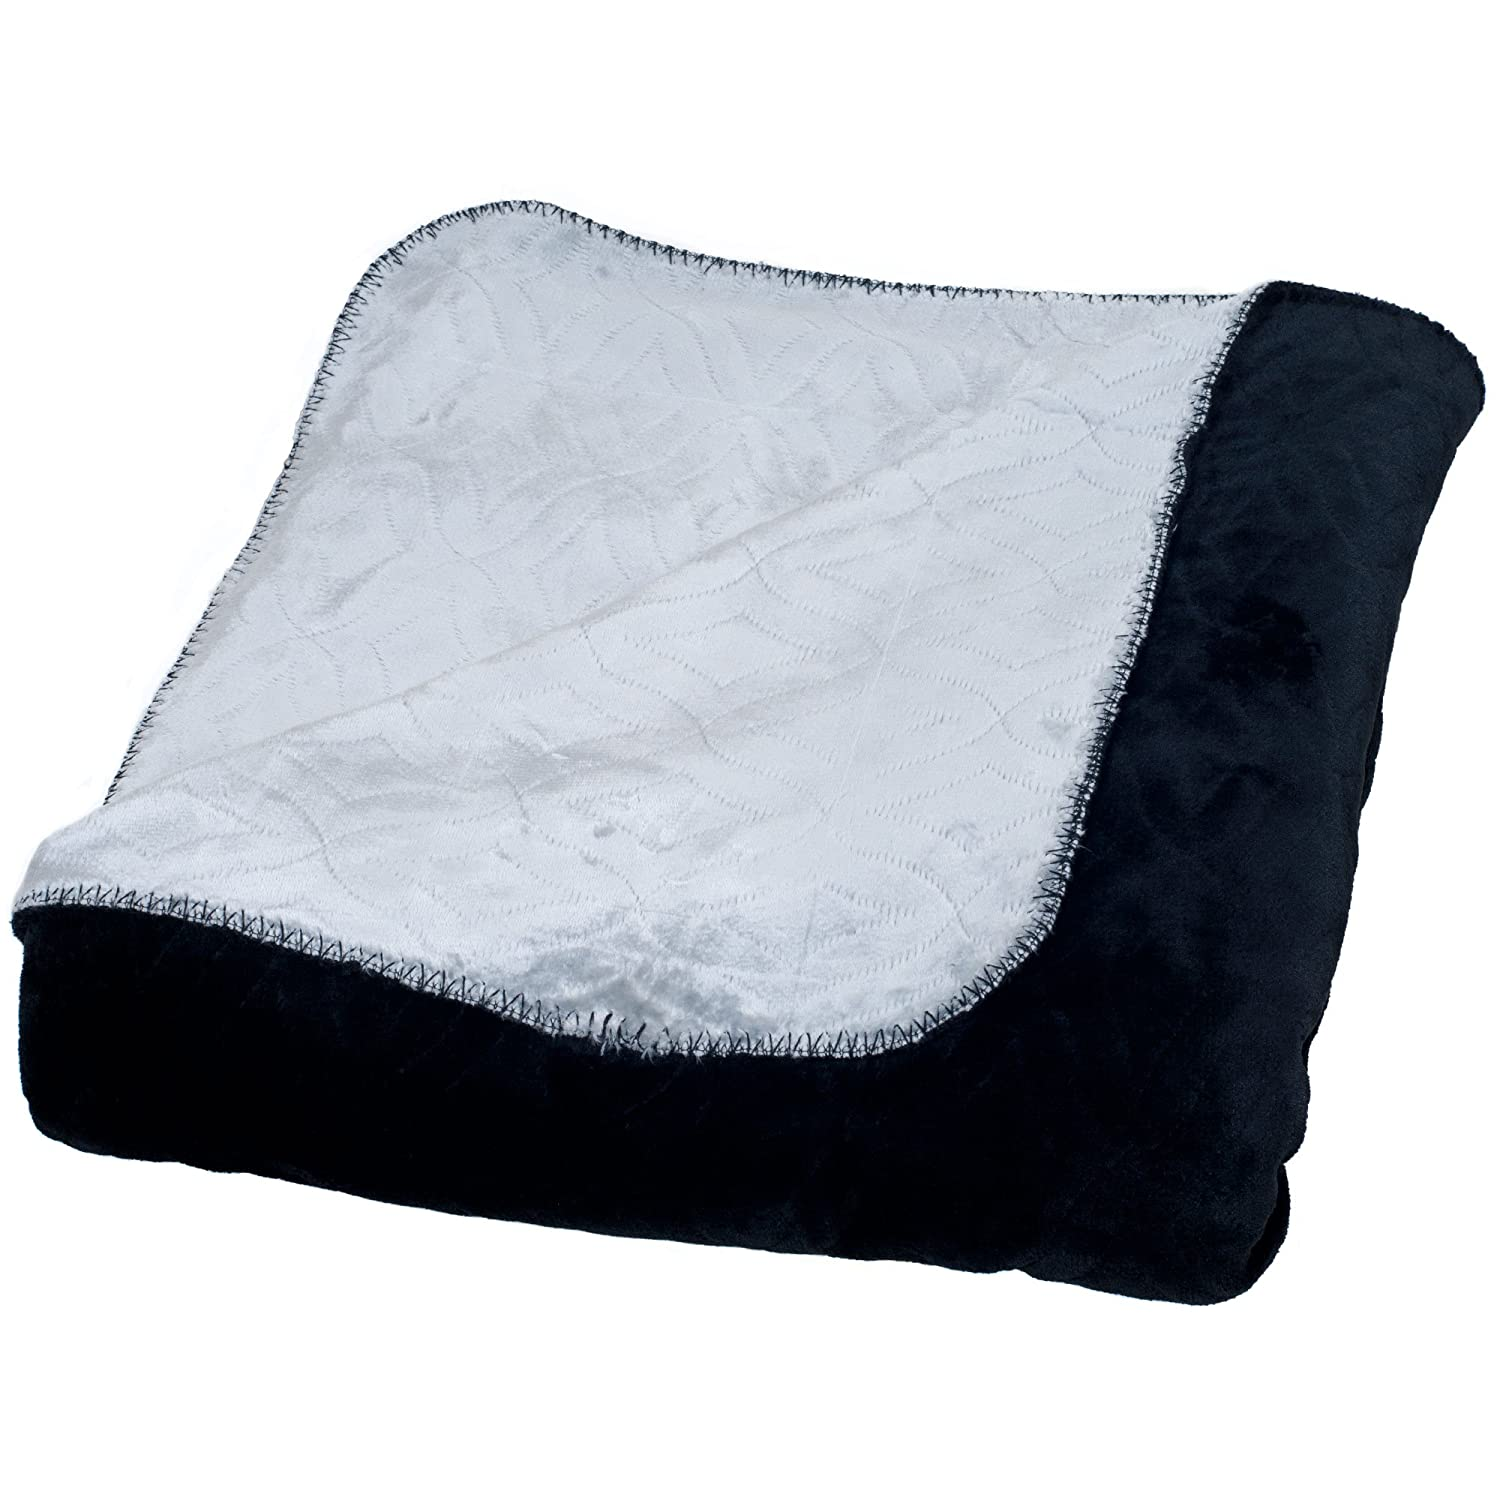 Lavish Home Super Warm Flannel-Like Reversible Blanket, Full/Queen, Blue/Grey 61-80-FQ-BLG